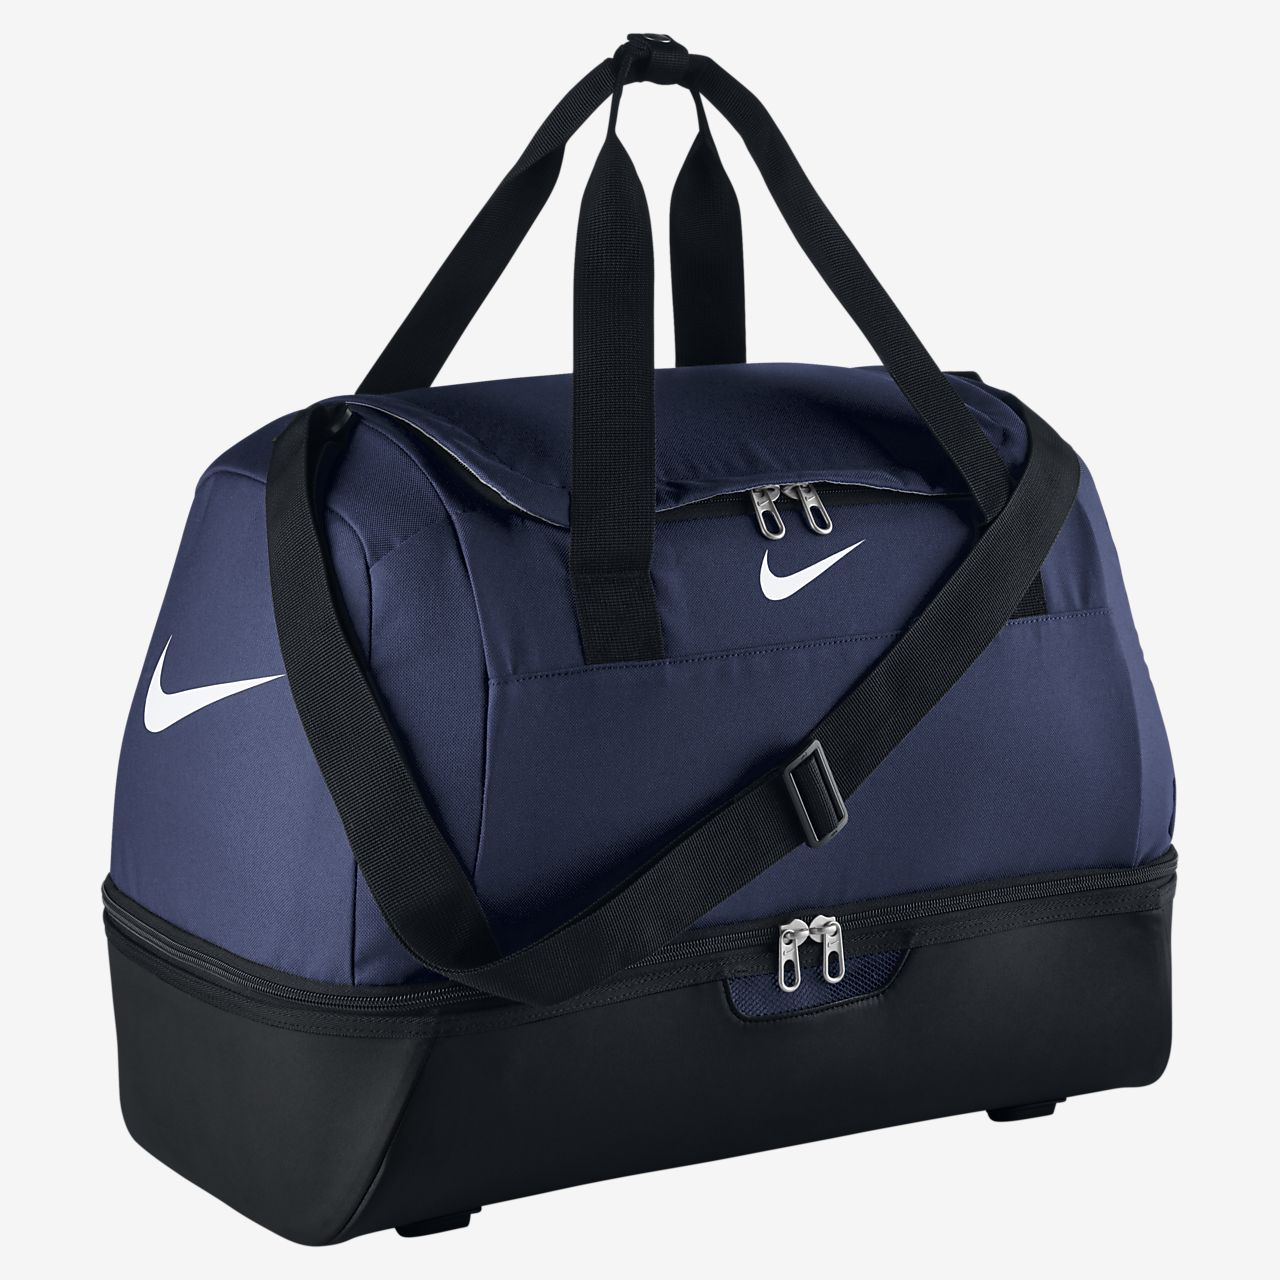 low priced d1536 81faf ... Sac de sport Nike Football Club Team Hardcase (taille moyenne)